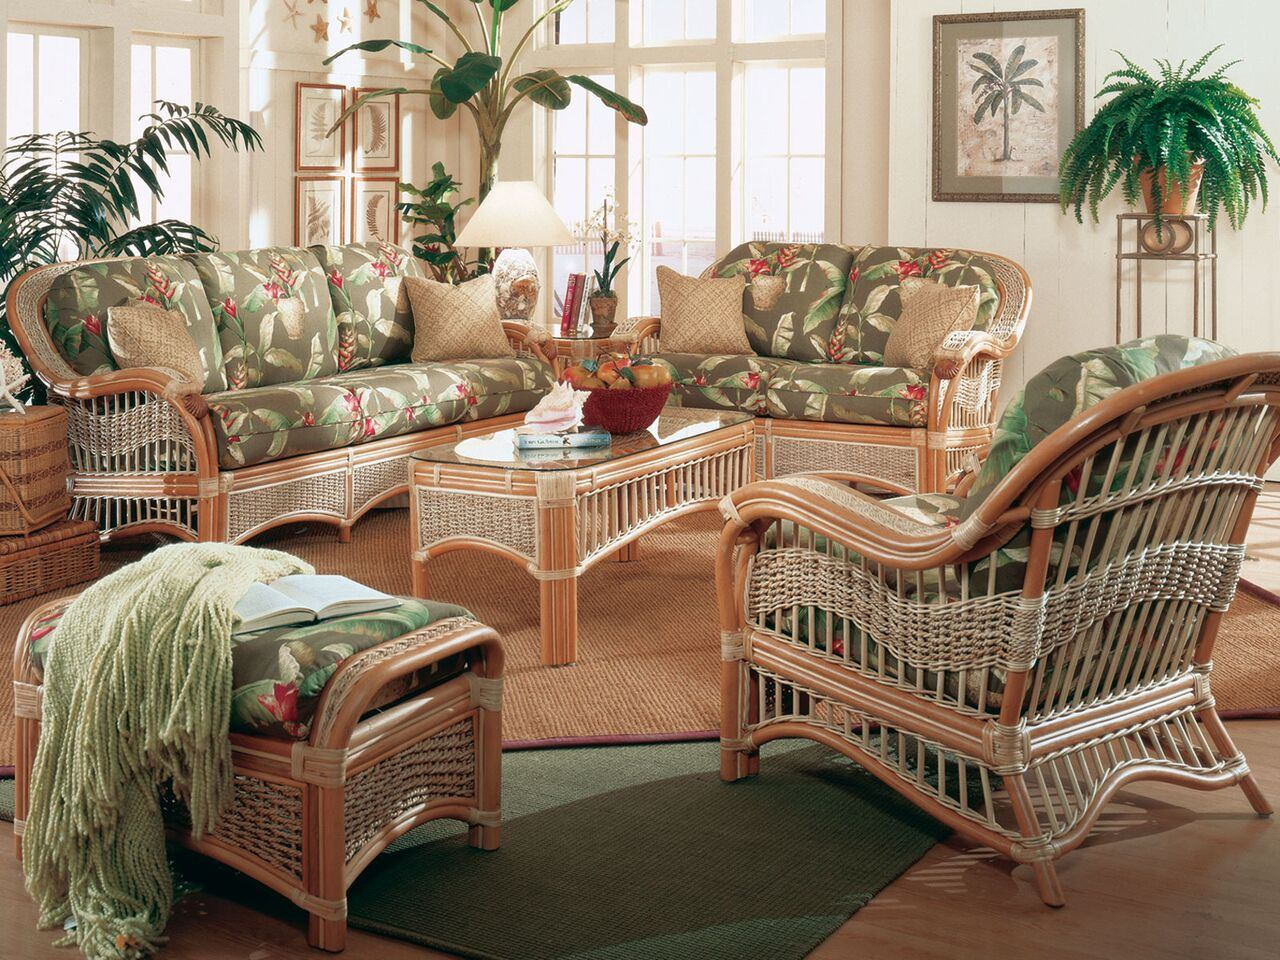 Spice Islands Spice Islands Seascape Sofa Brownwash Sofa - Rattan Imports